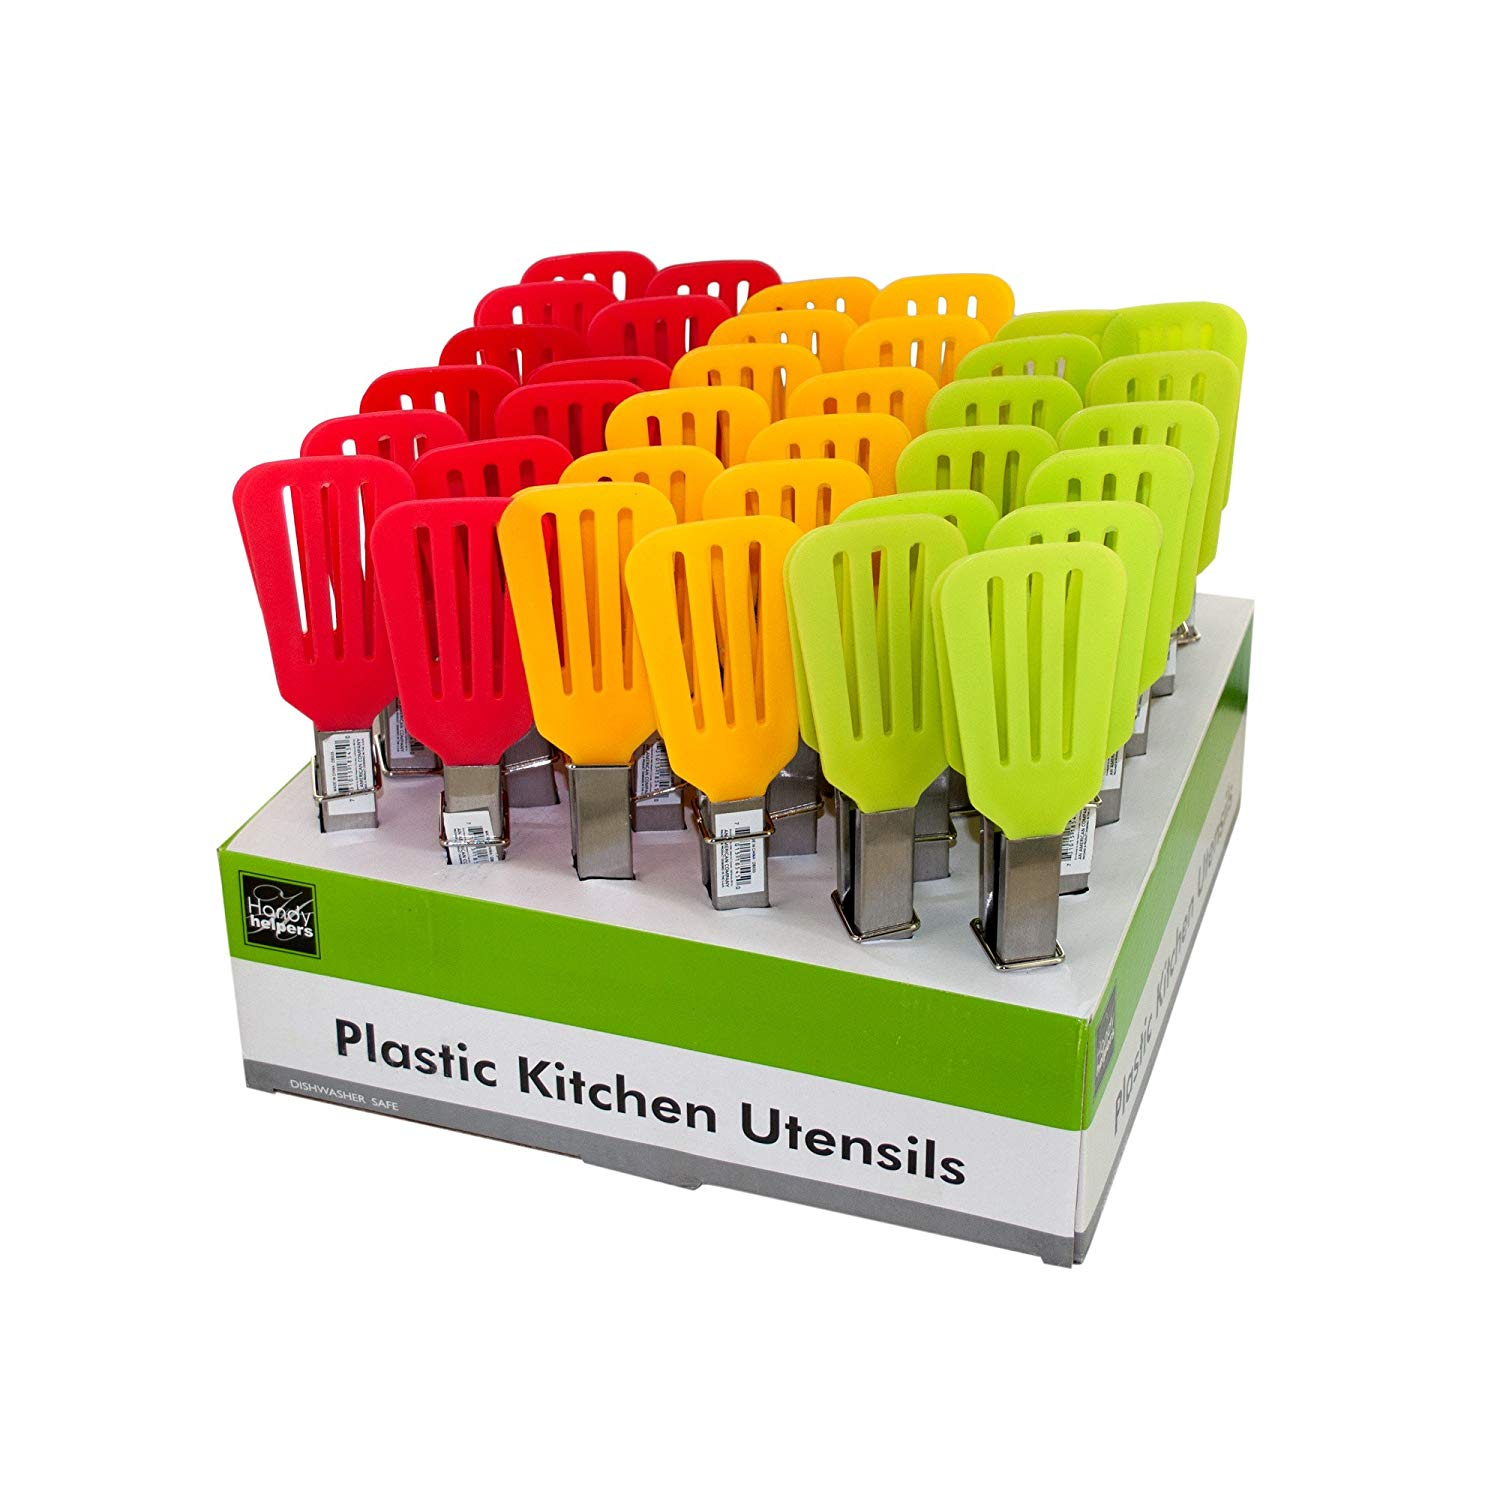 123-Wholesale - Set of 36 Plastic Kitchen Turner Tongs Counter Top Display - Kitchen & Dining Kitchen Tools & Utensils